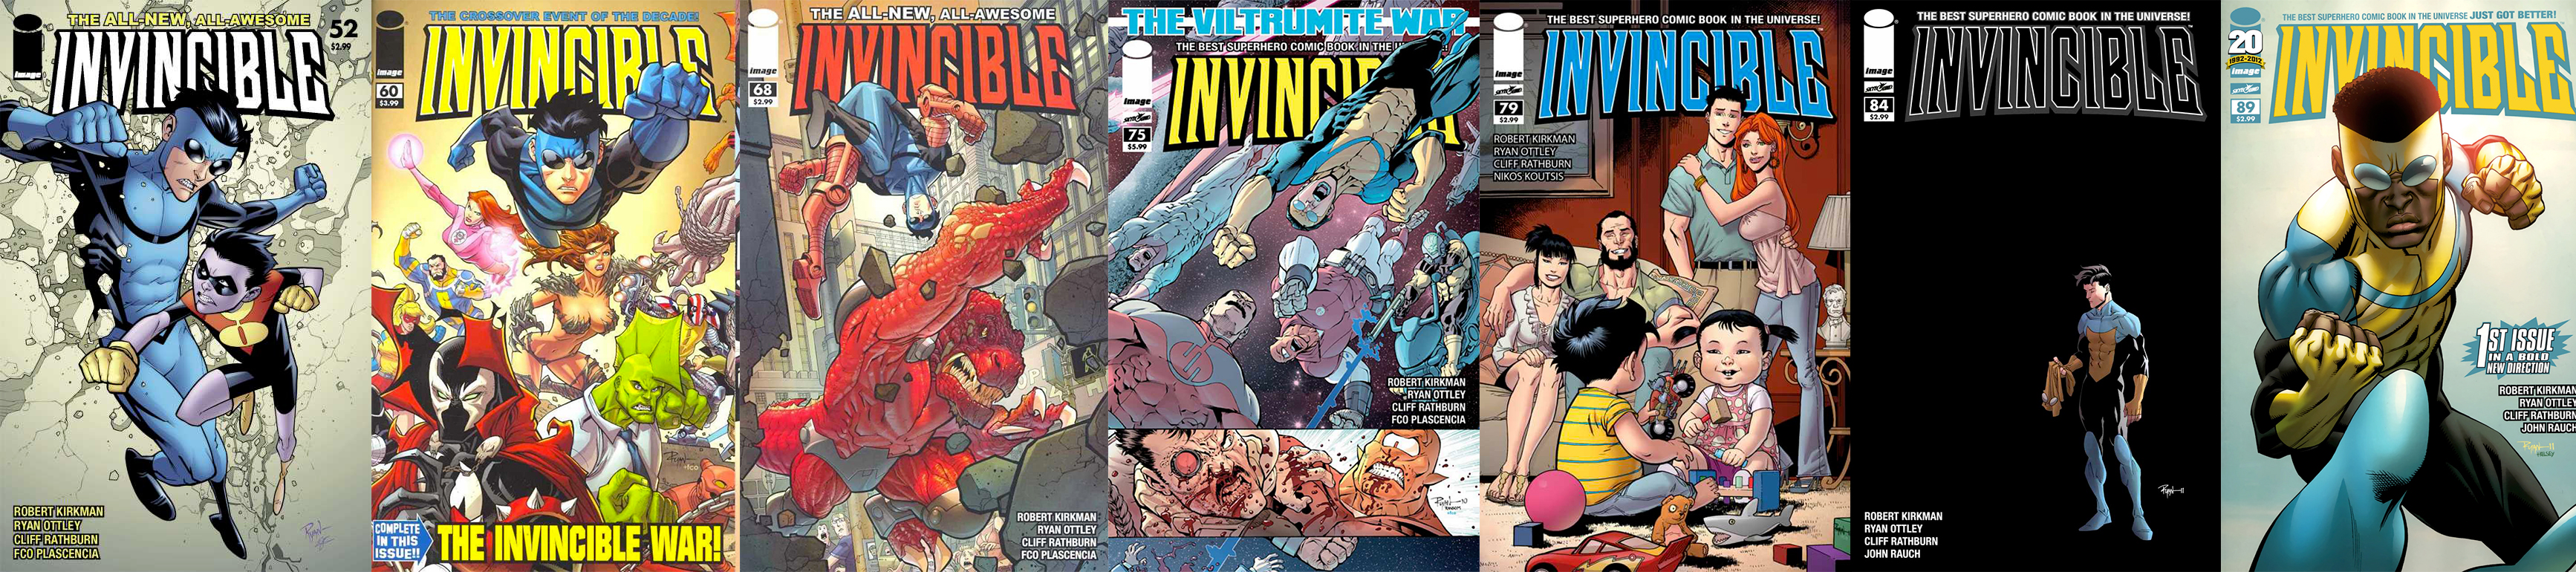 invincible-banner-002